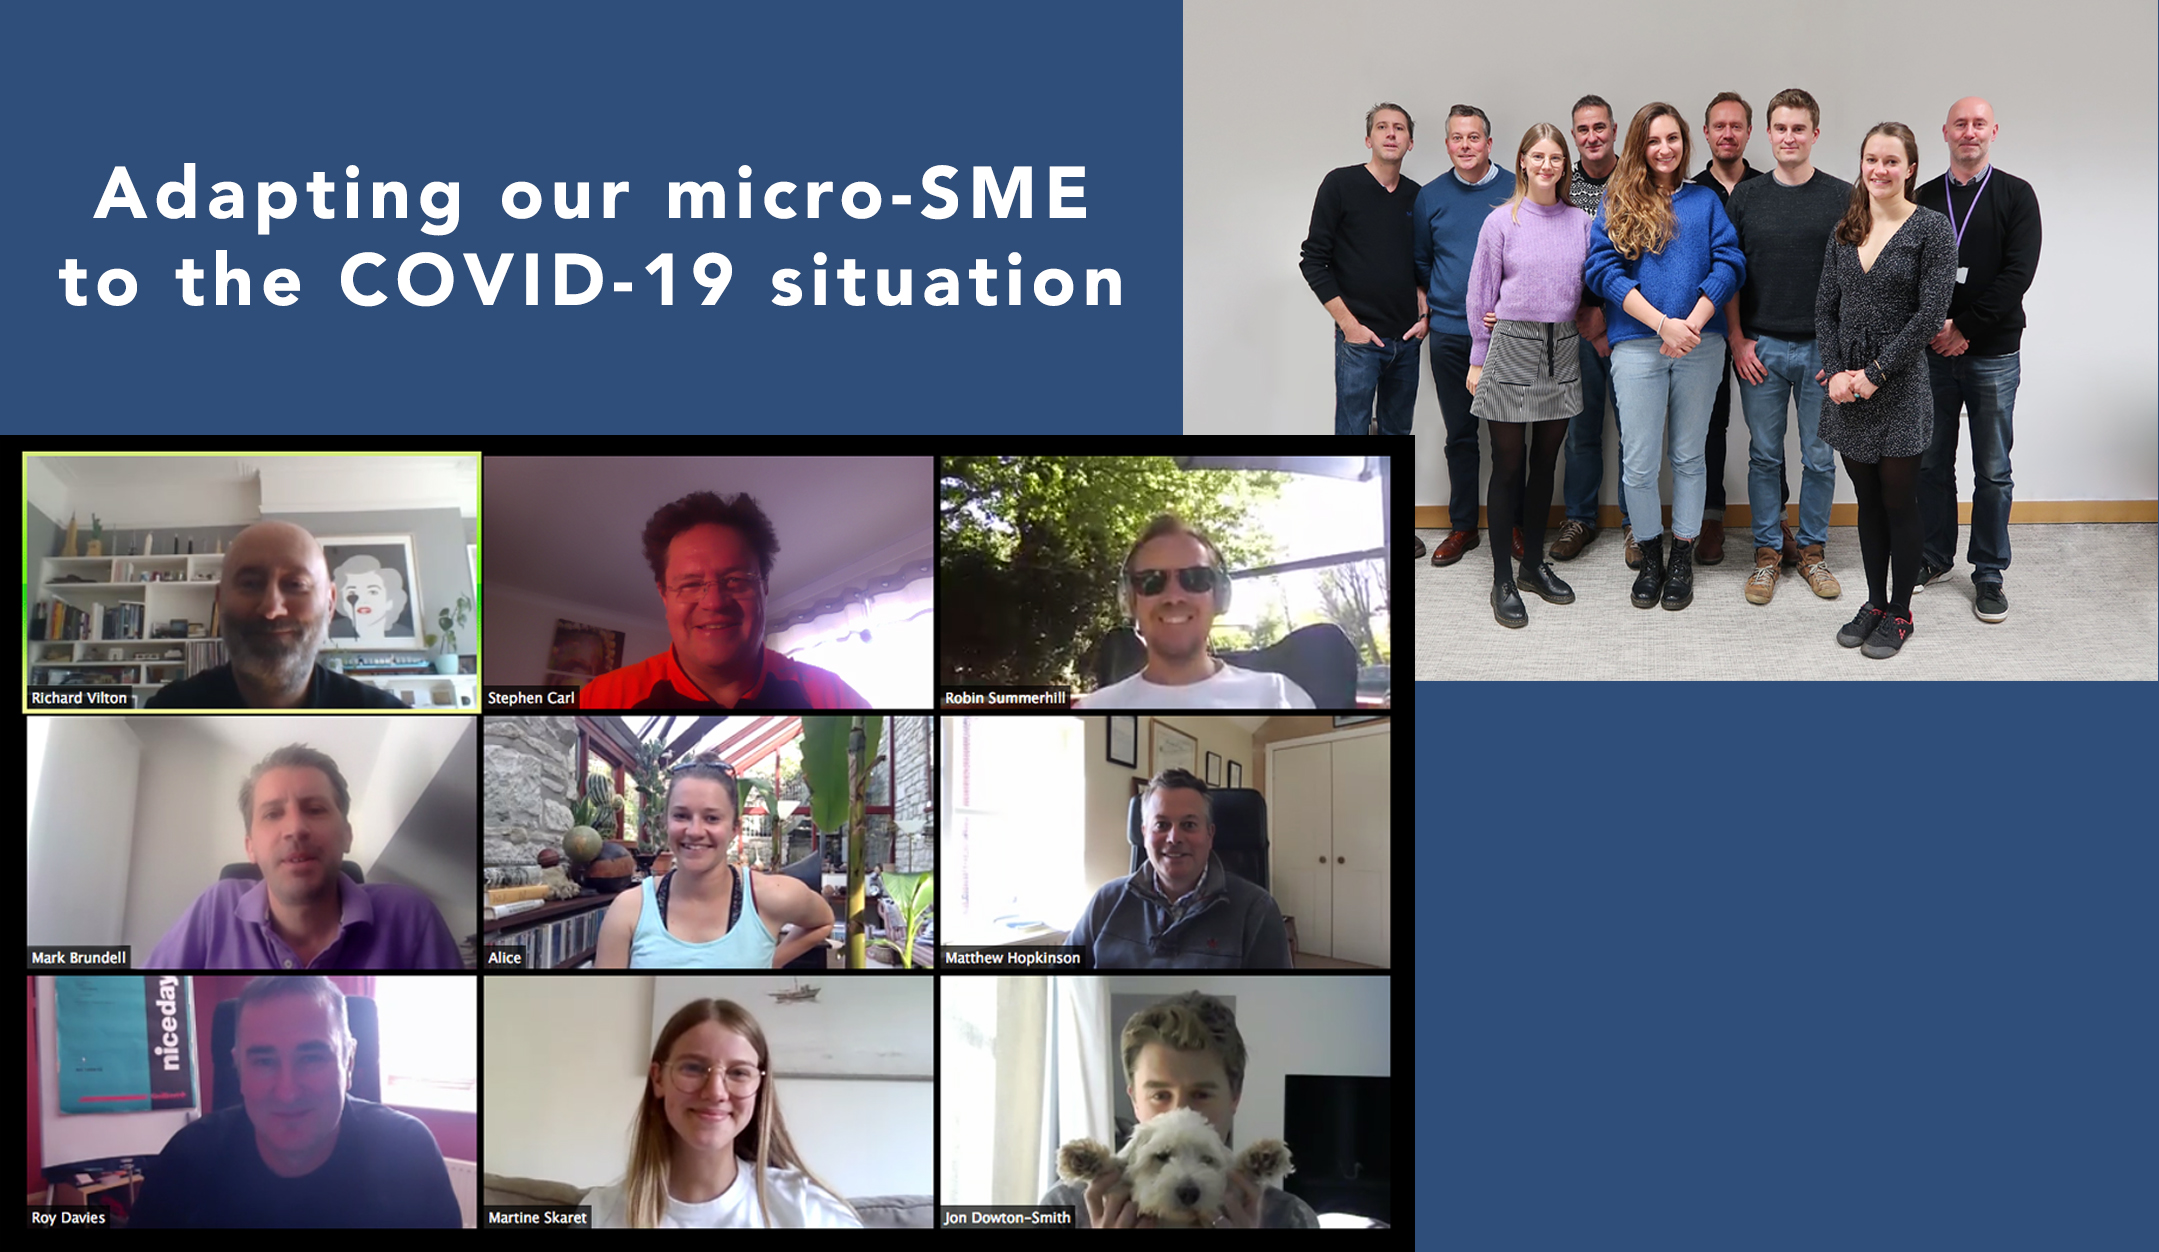 Adapting our micro-SME to the COVID-19 situation - Emu in lockdown